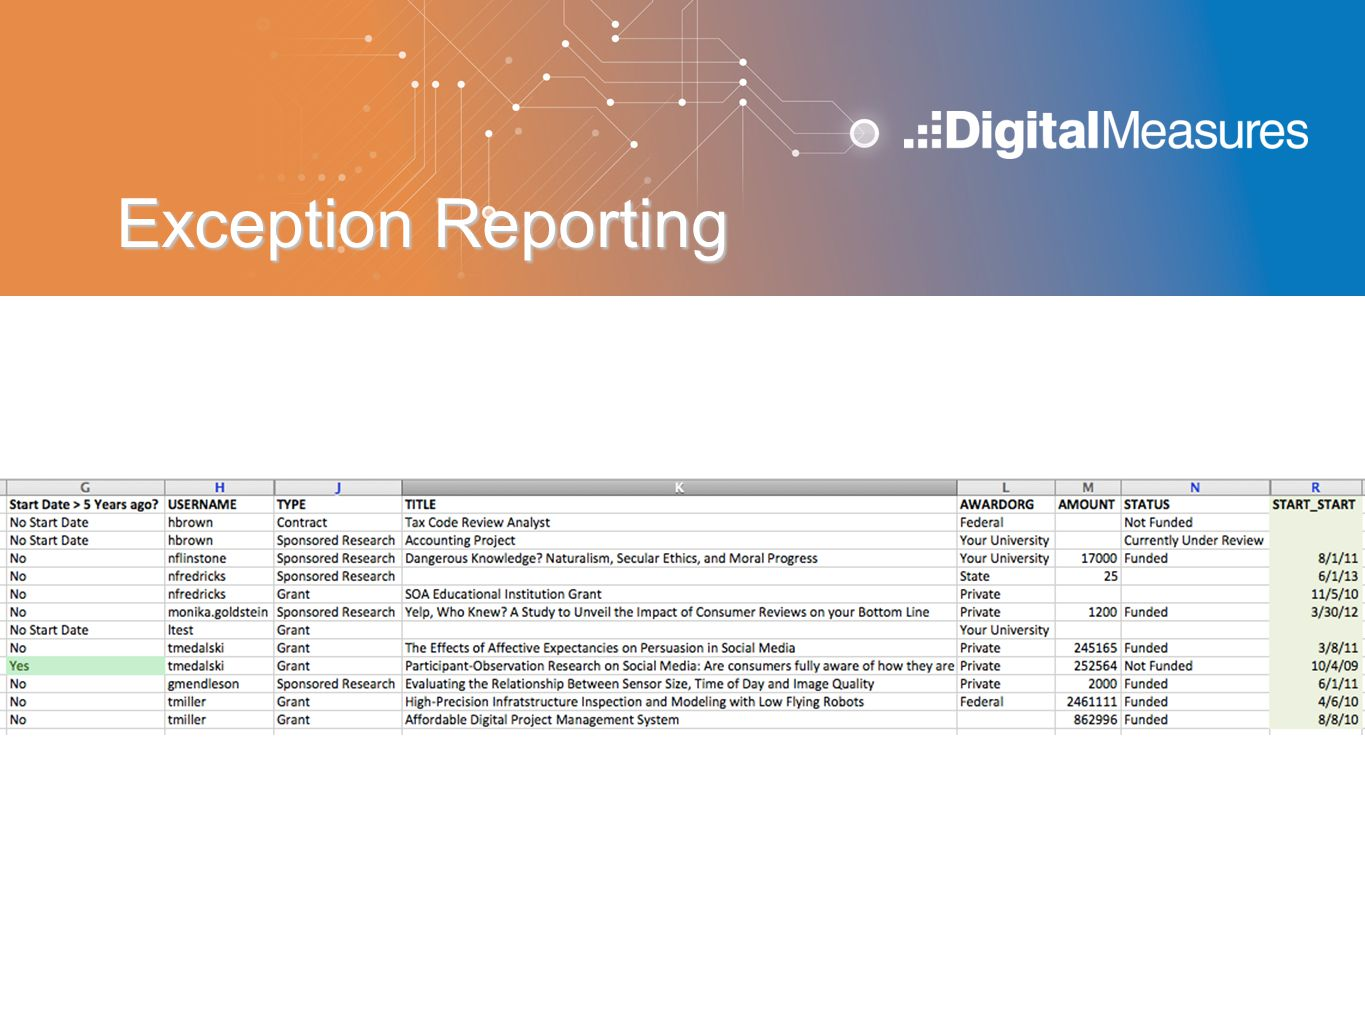 Exception Reporting